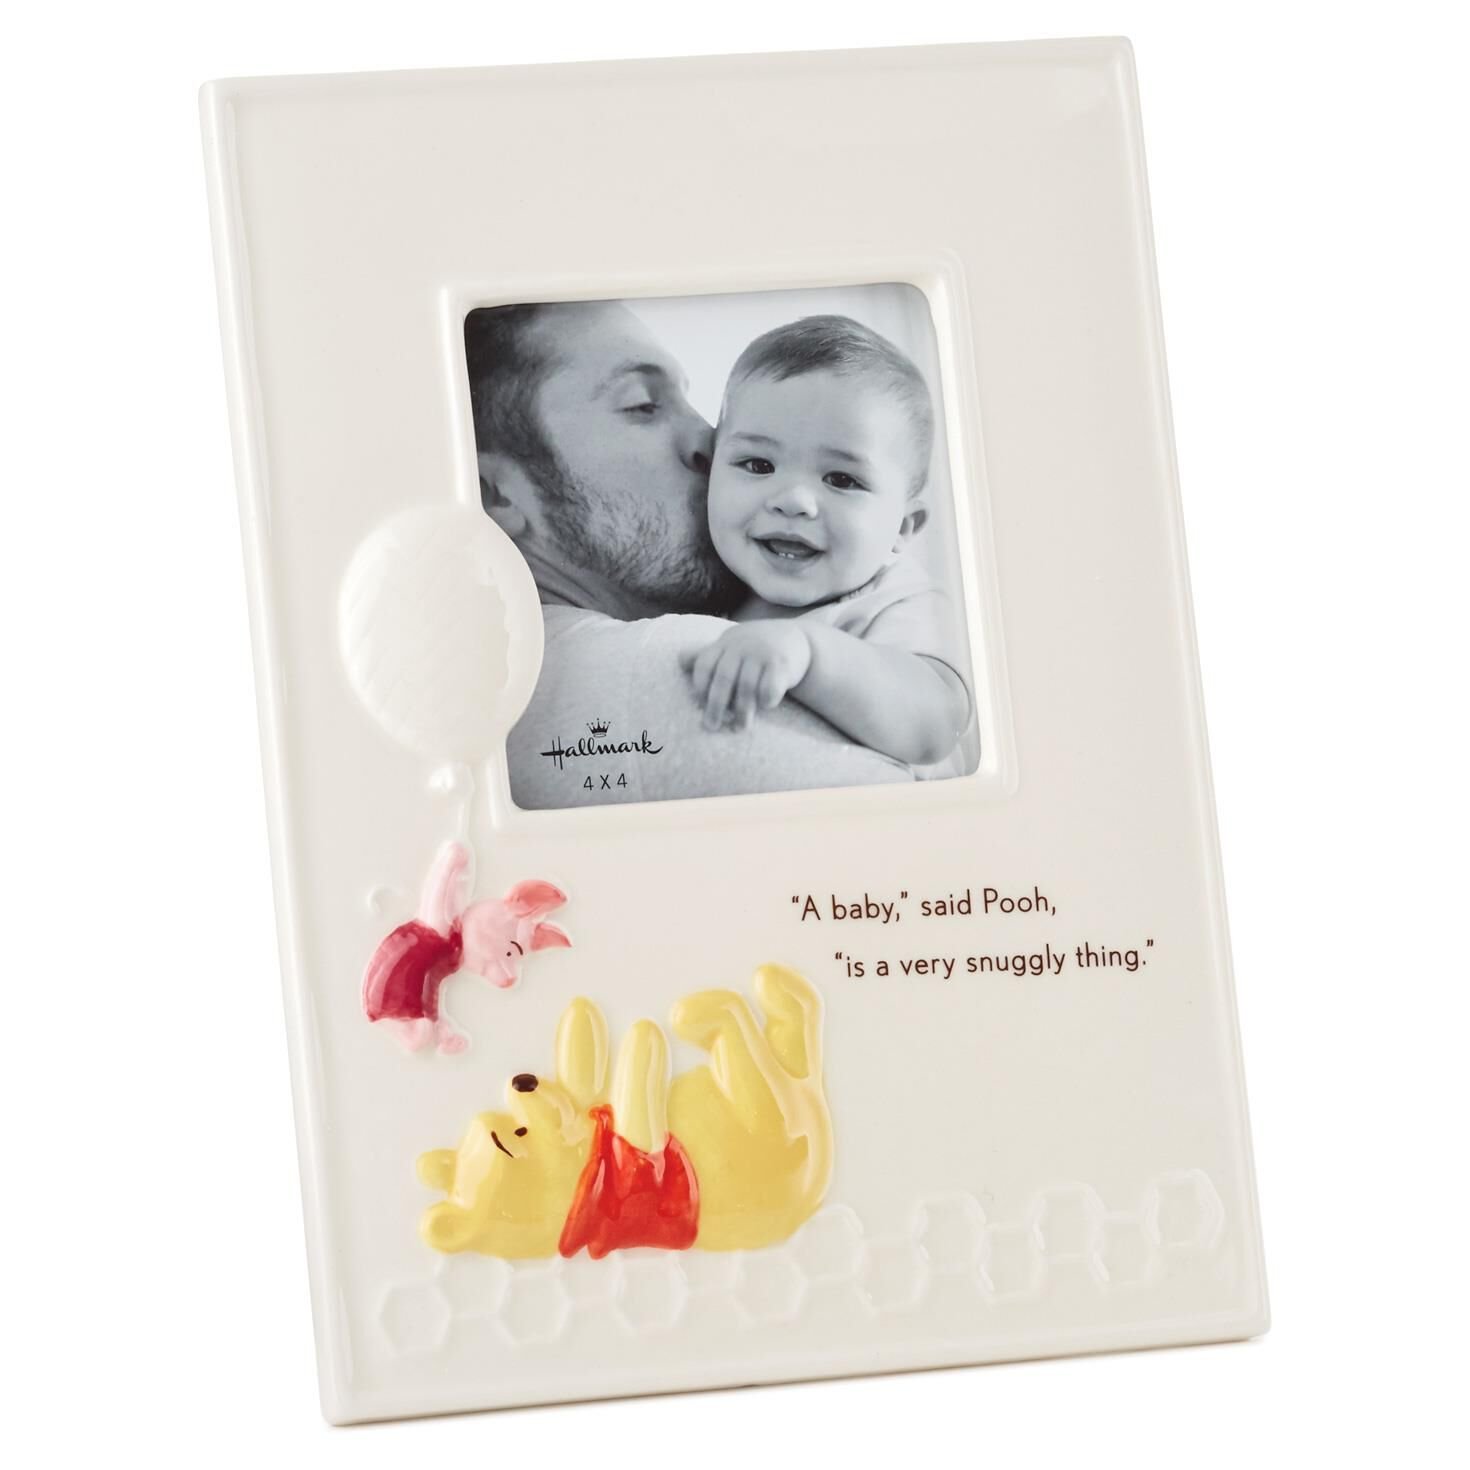 winnie the pooh baby ceramic square picture frame 4x4 picture frames hallmark - Winnie The Pooh Picture Frame